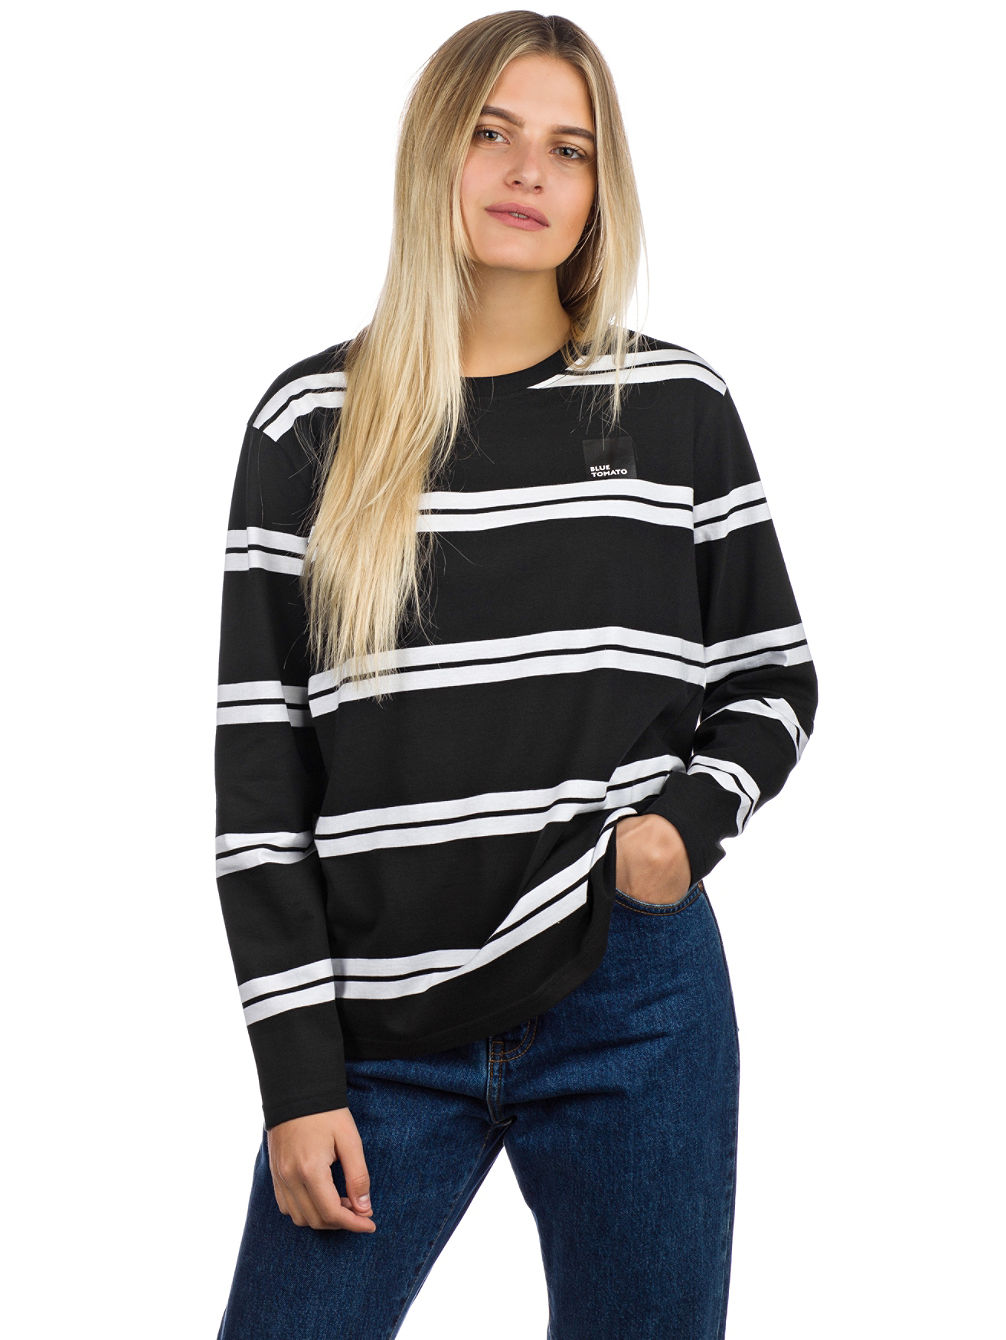 BT Authentic Stripes Camiseta